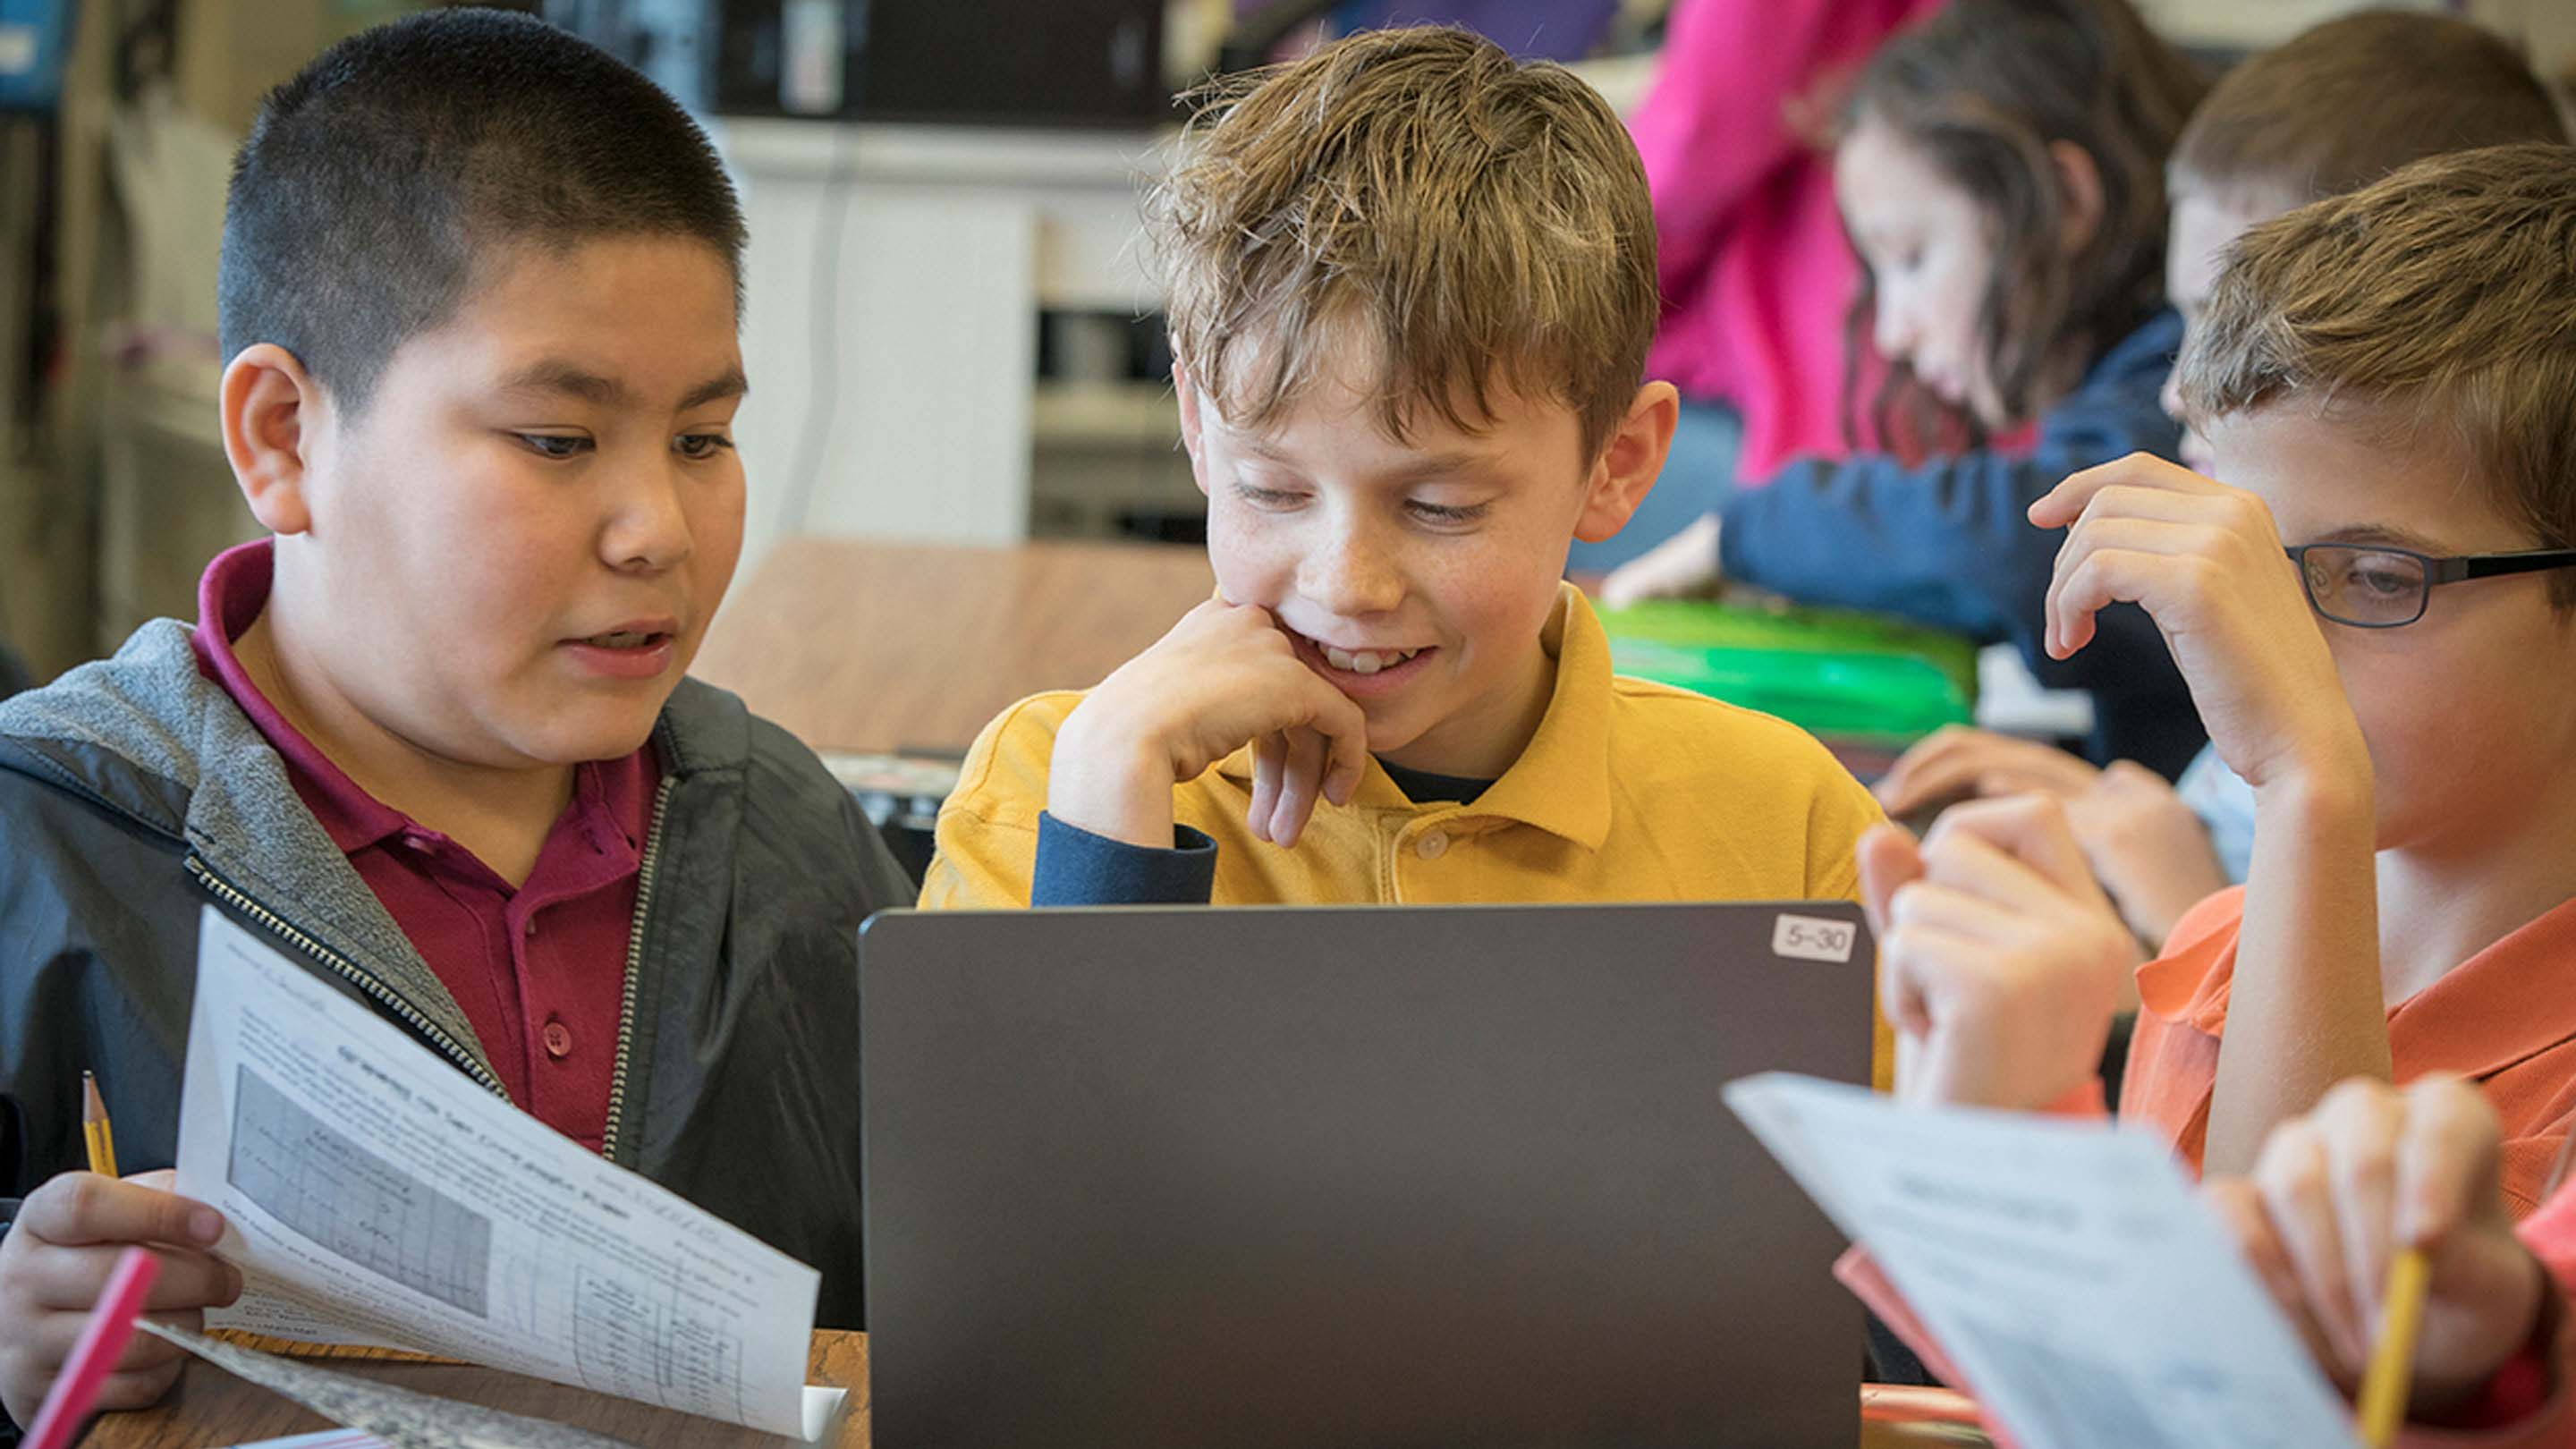 A closeup of three young boys sitting at a classroom table looking at an opened laptop together.